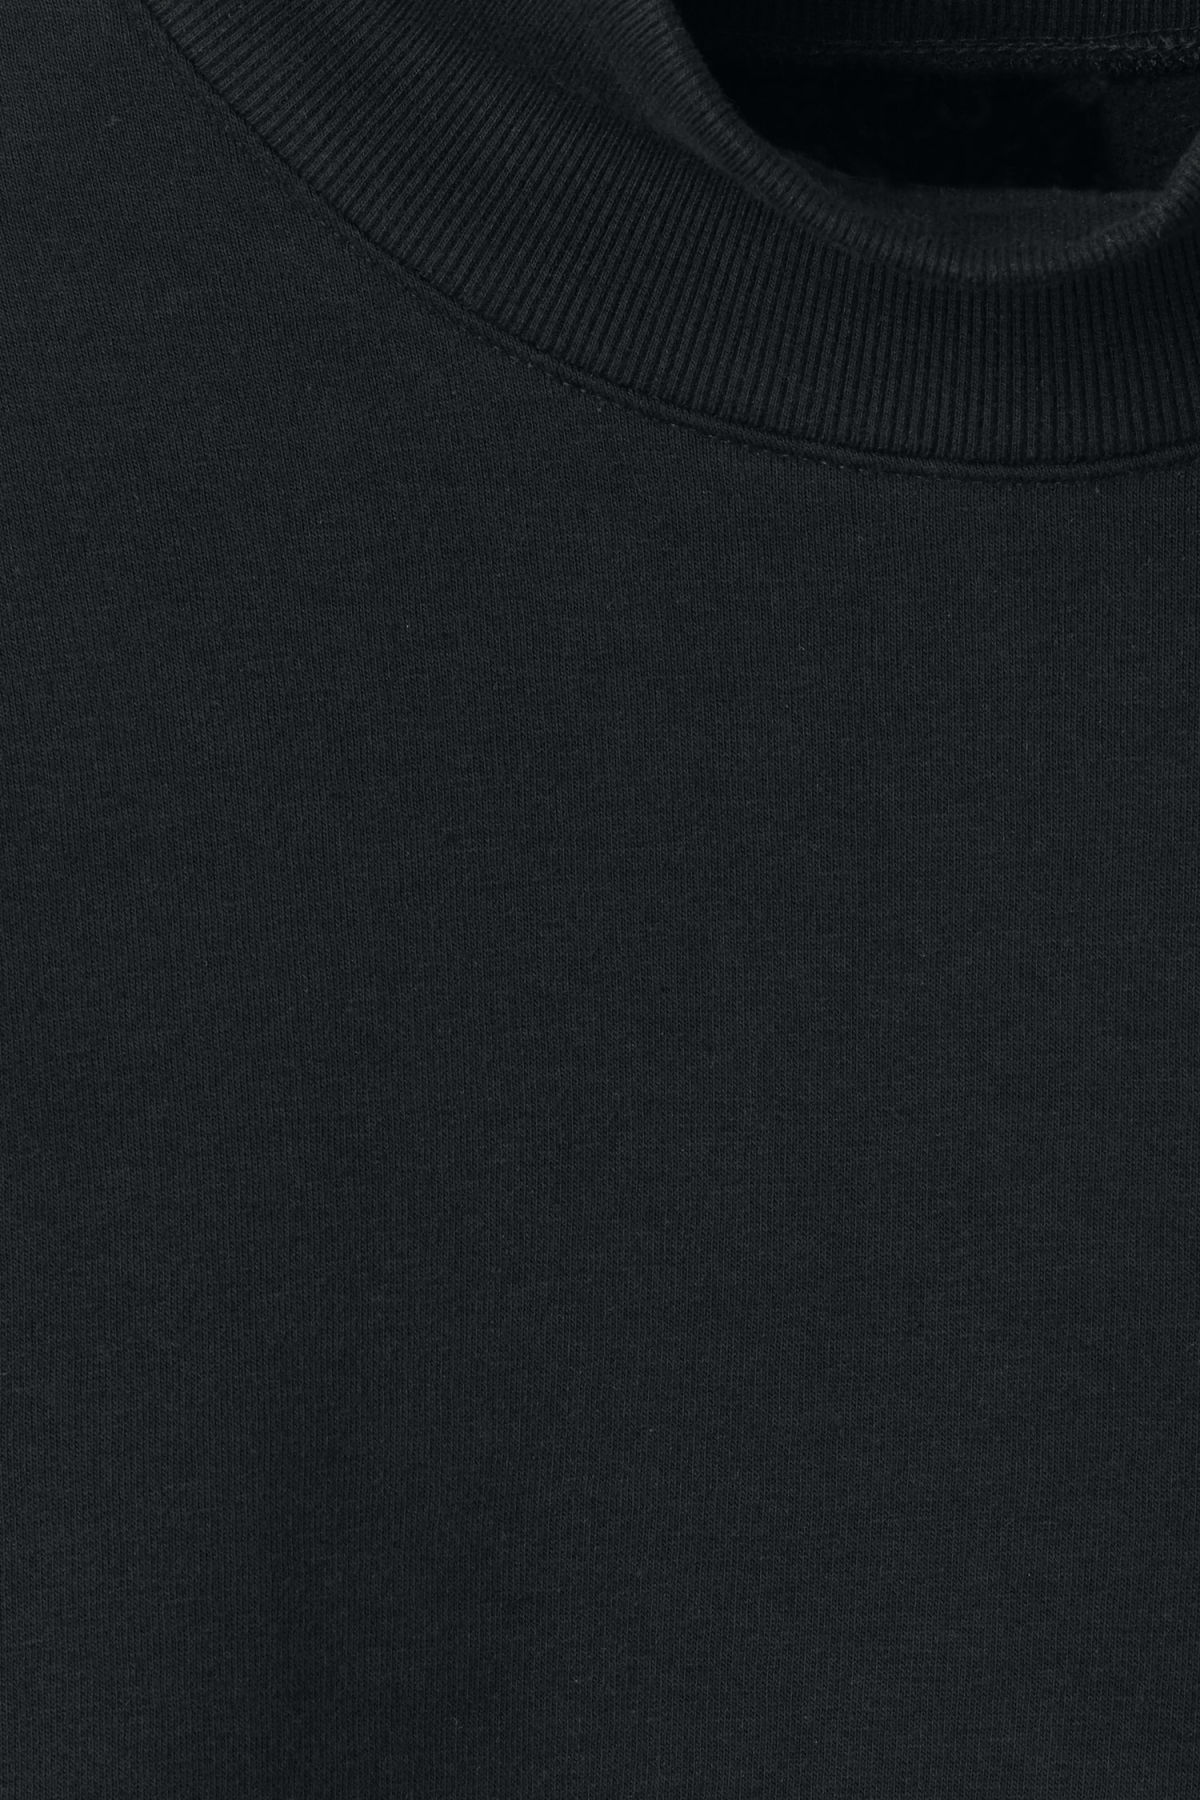 Detailed image of Weekday big turtleneck sweatshirt in black